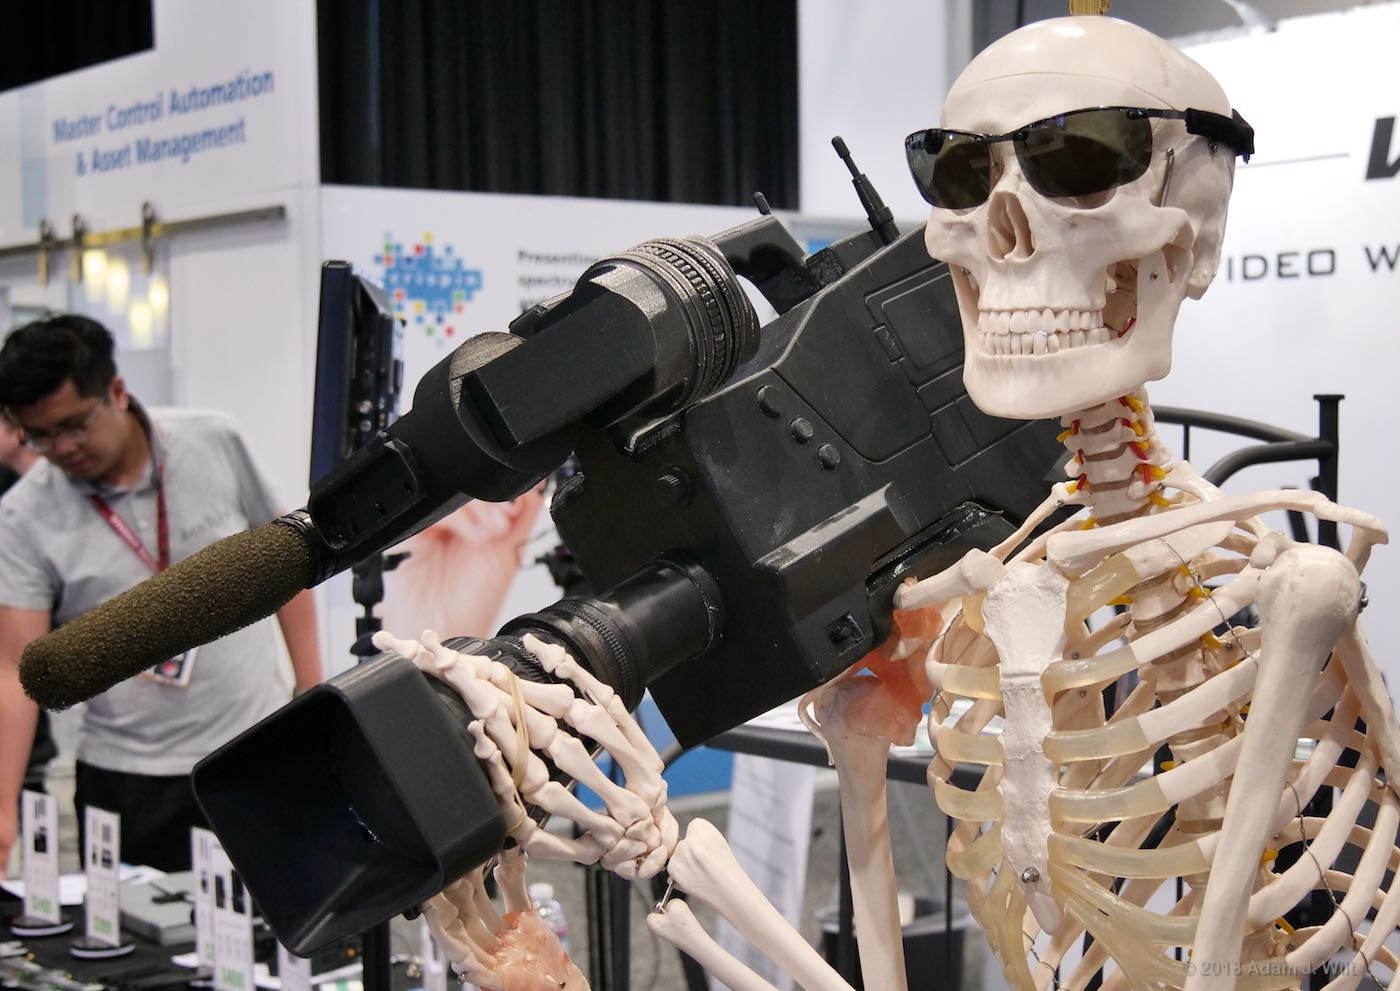 Skeleton holding an ENG camcorder